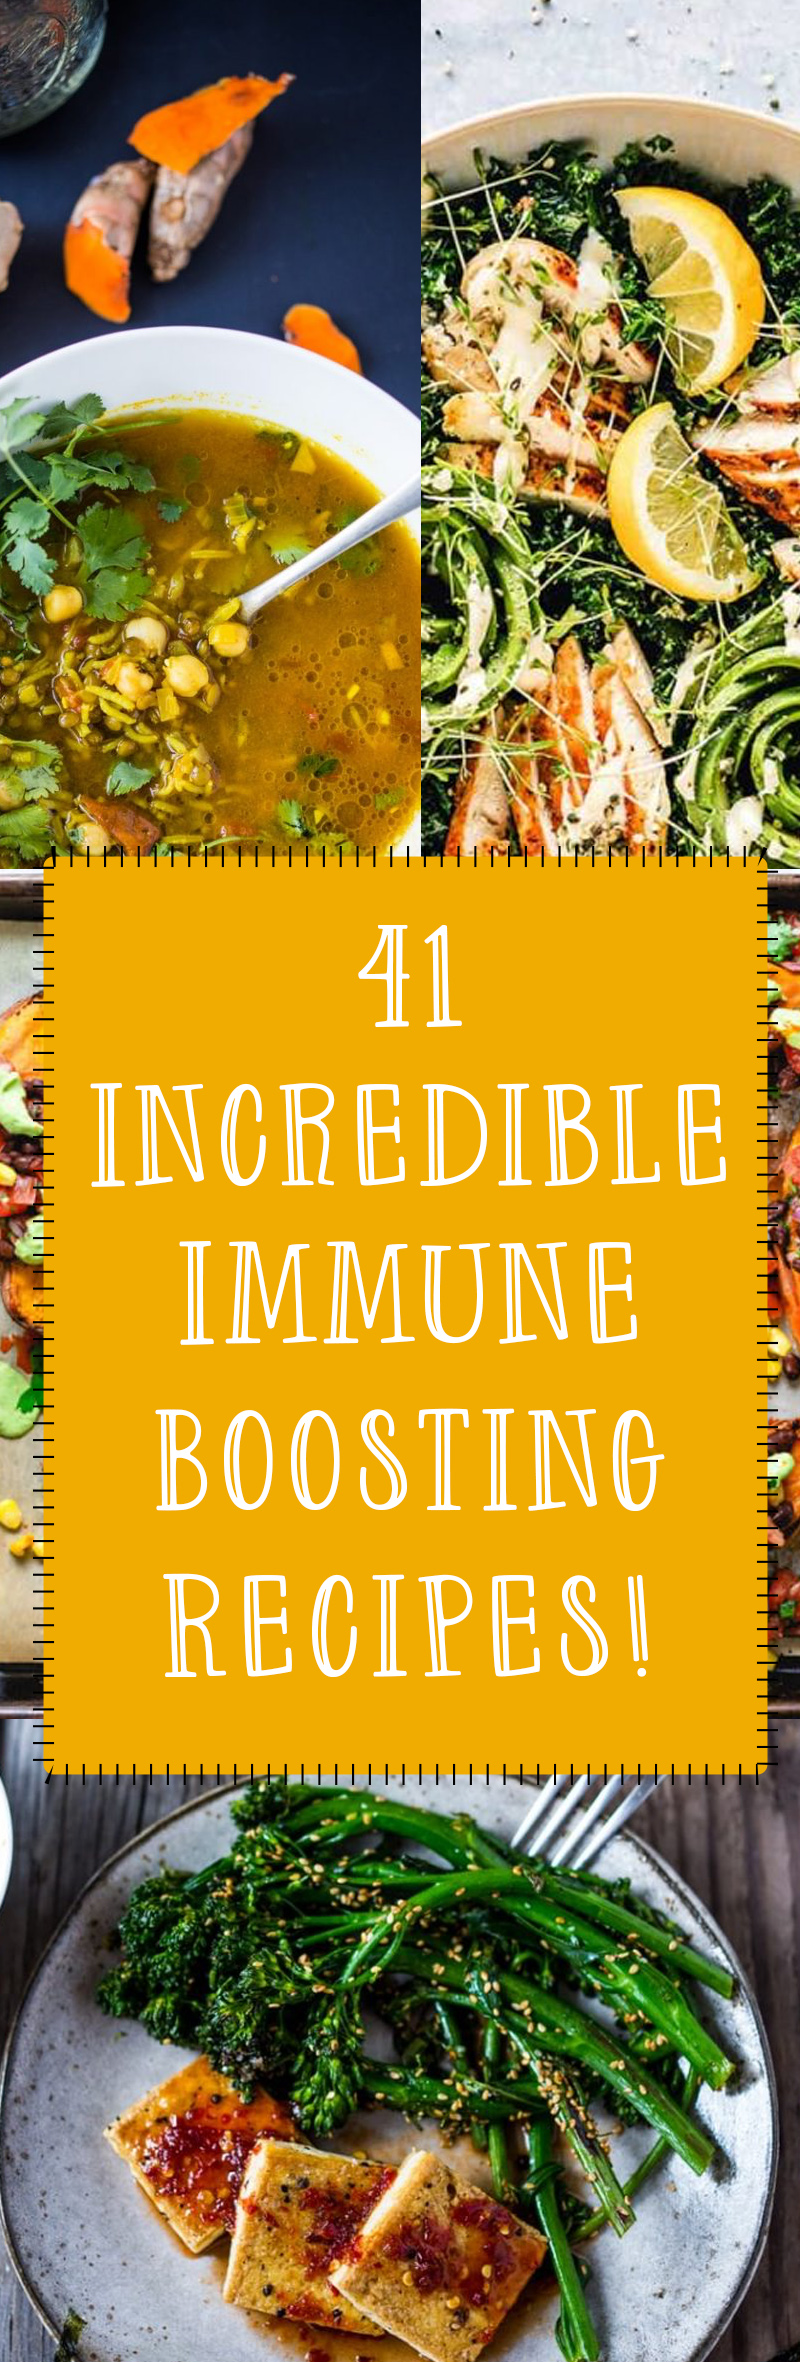 41 Immune Boosting Aspect Packed Recipes That You Will Love!